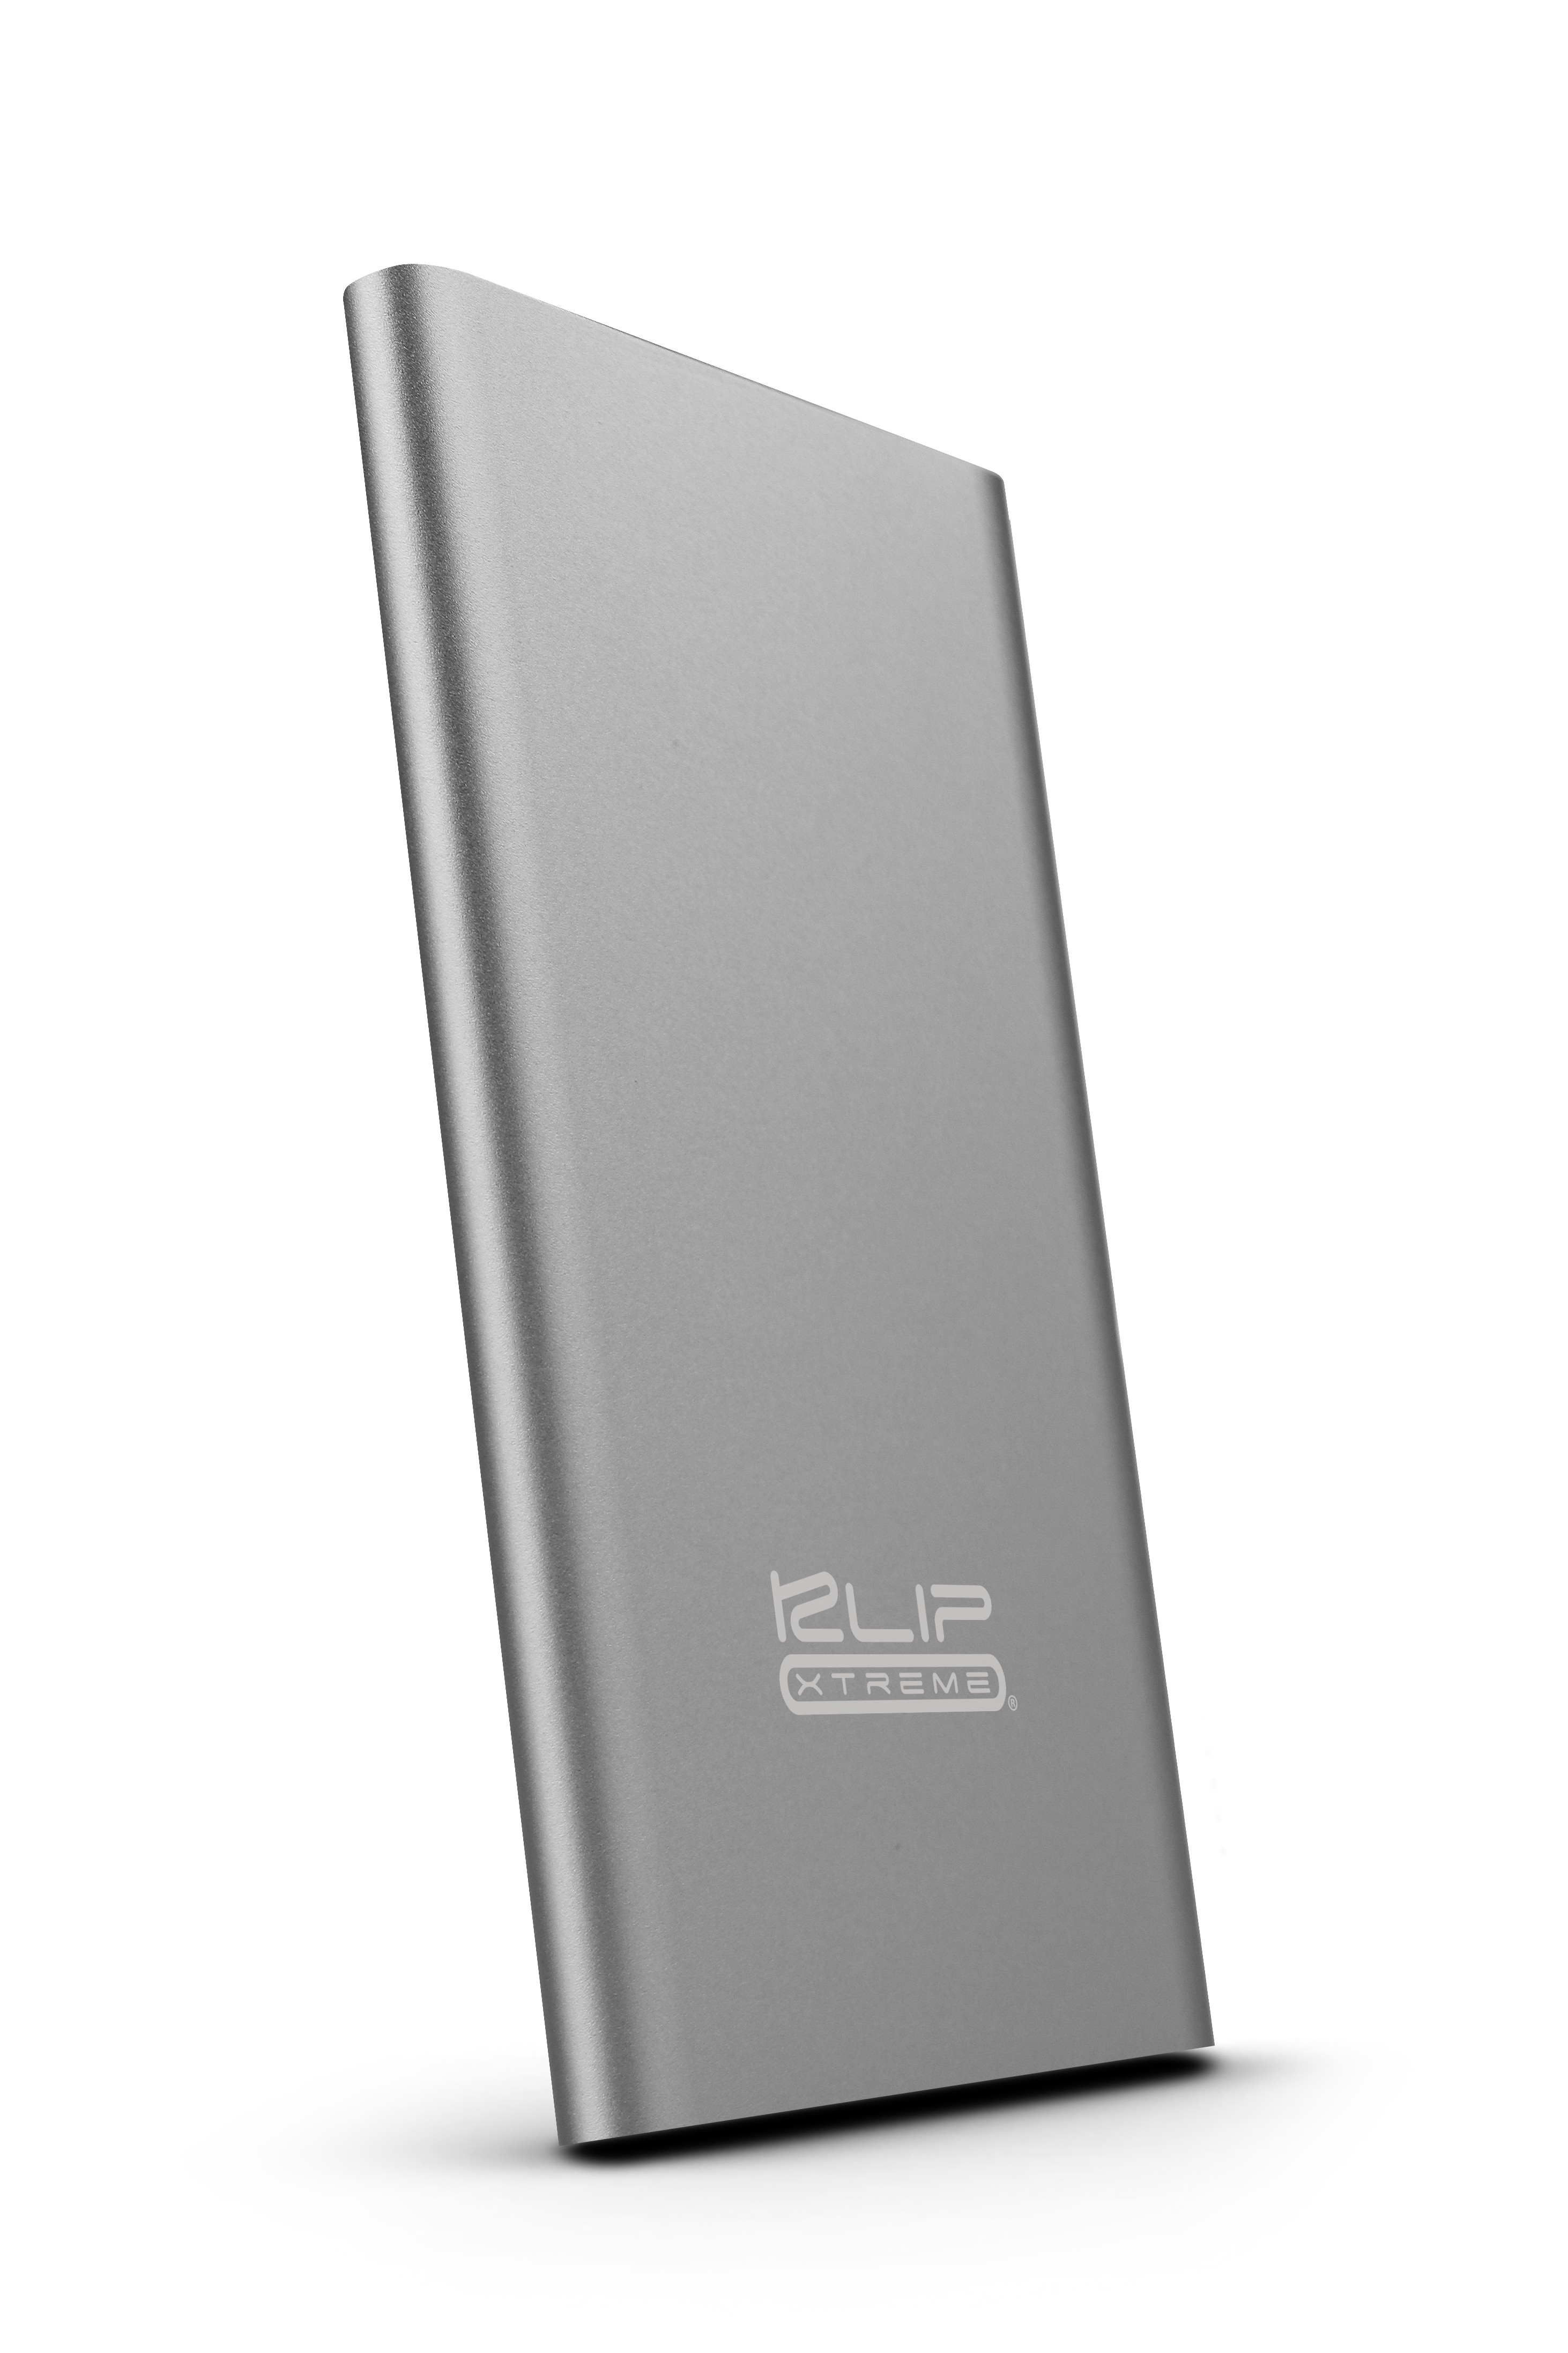 Power Bank Klipx Kbh-175sv Enox80000 Silver